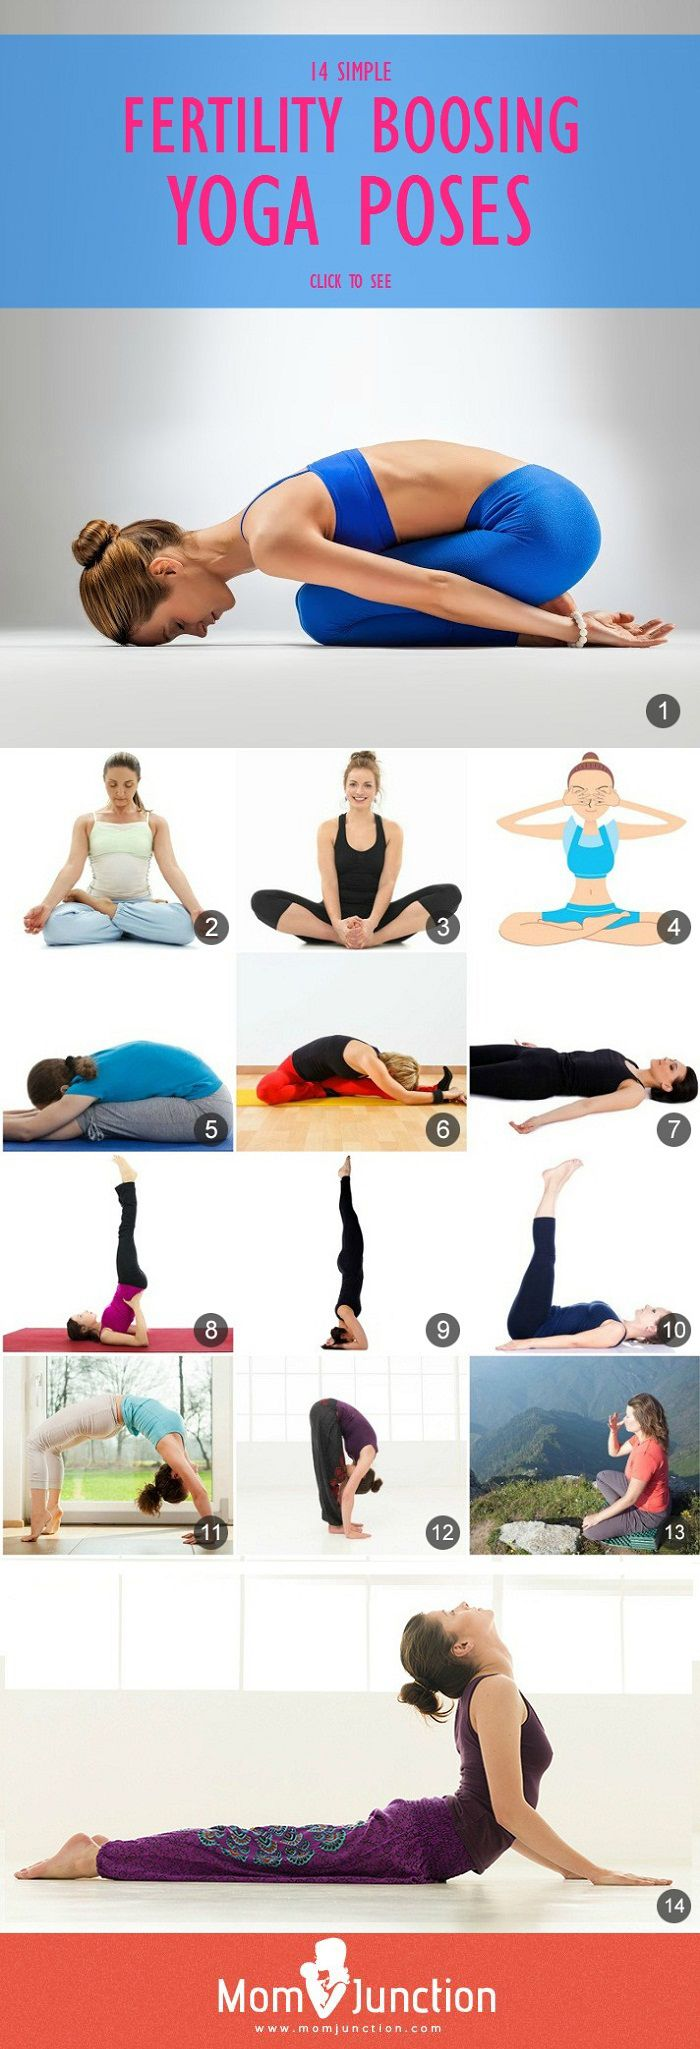 Yoga for Fertility :Doing yoga everyday enhances the body functioning and balances the mental state. With Yoga, not only your stress level comes down but emotional and hormonal balance is also achieved.These simple yet powerful fertility #yoga poses should be practiced on a routine basis.